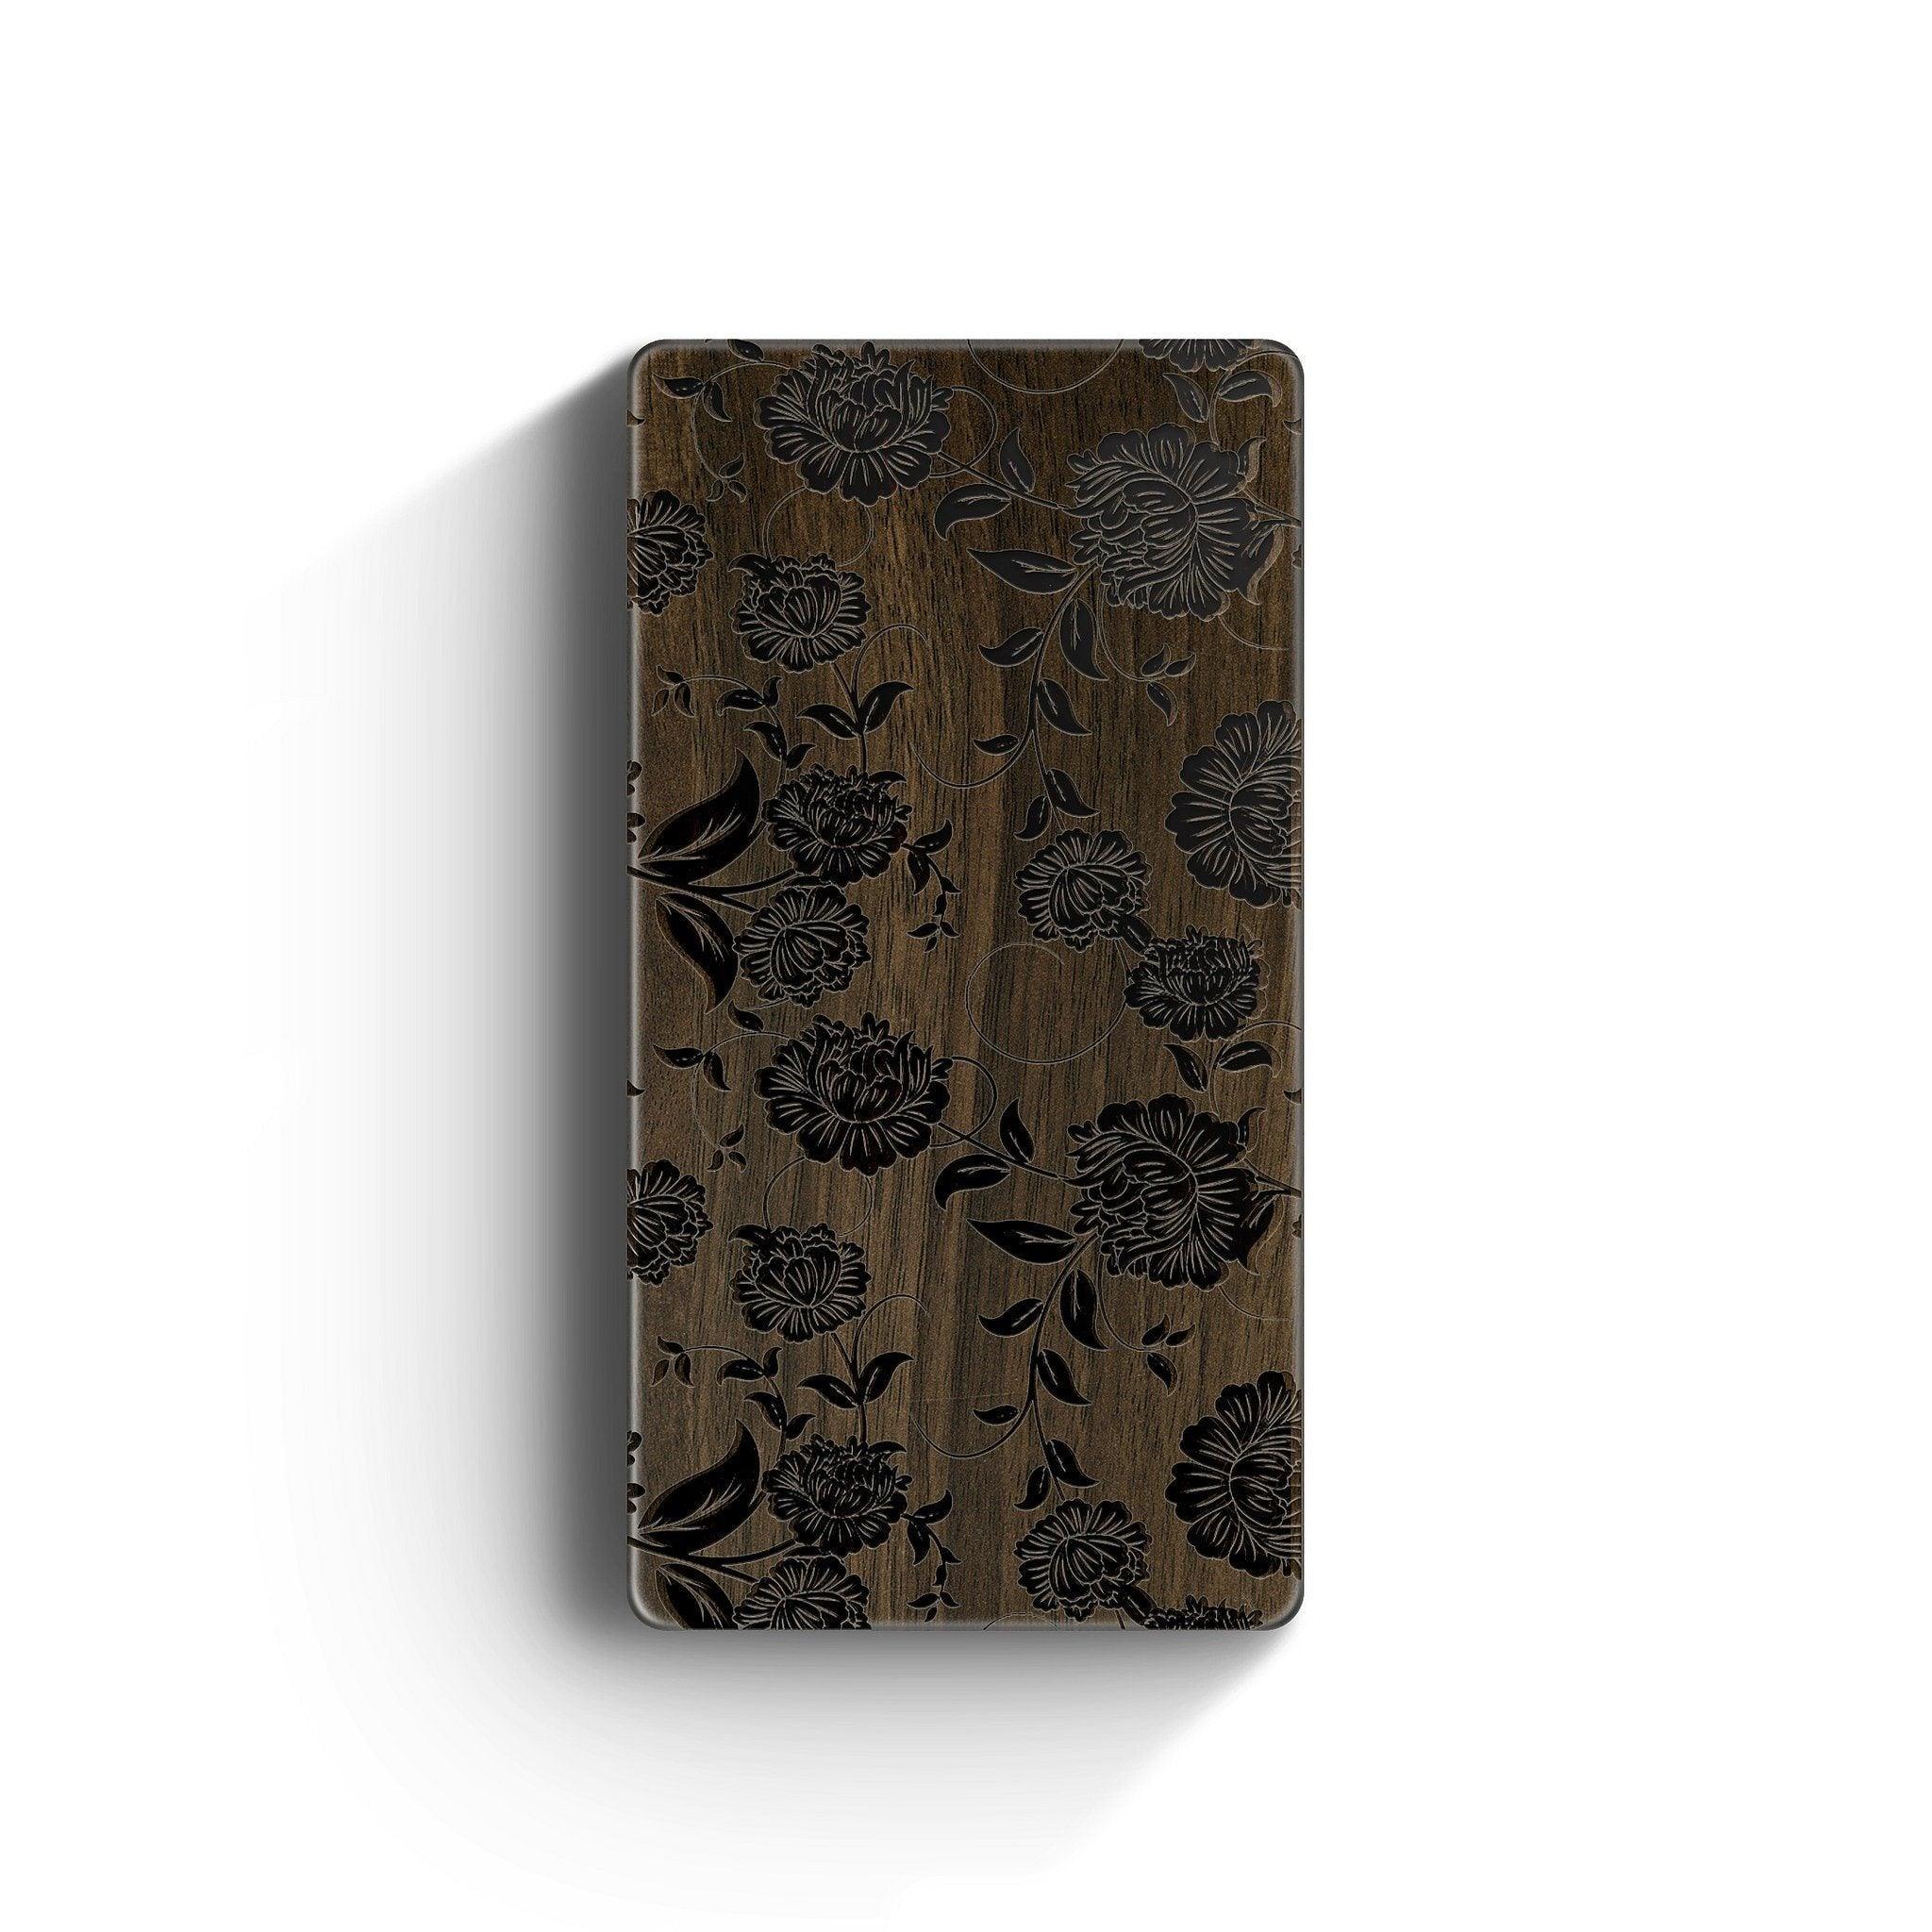 Walnut Power Bank Charger - Chrysanthemum